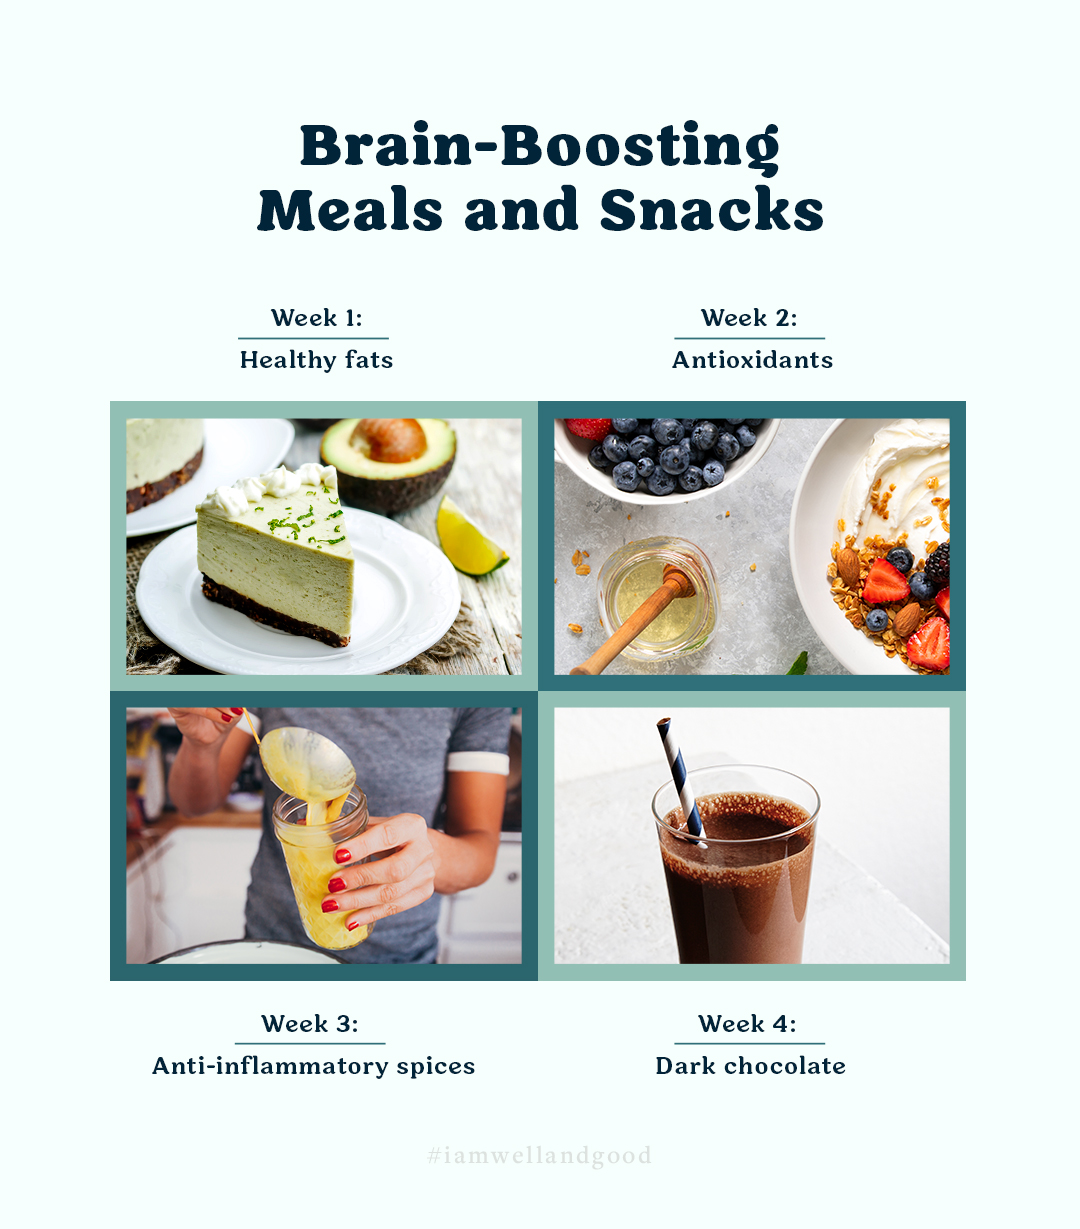 brain-boosting meals and snacks